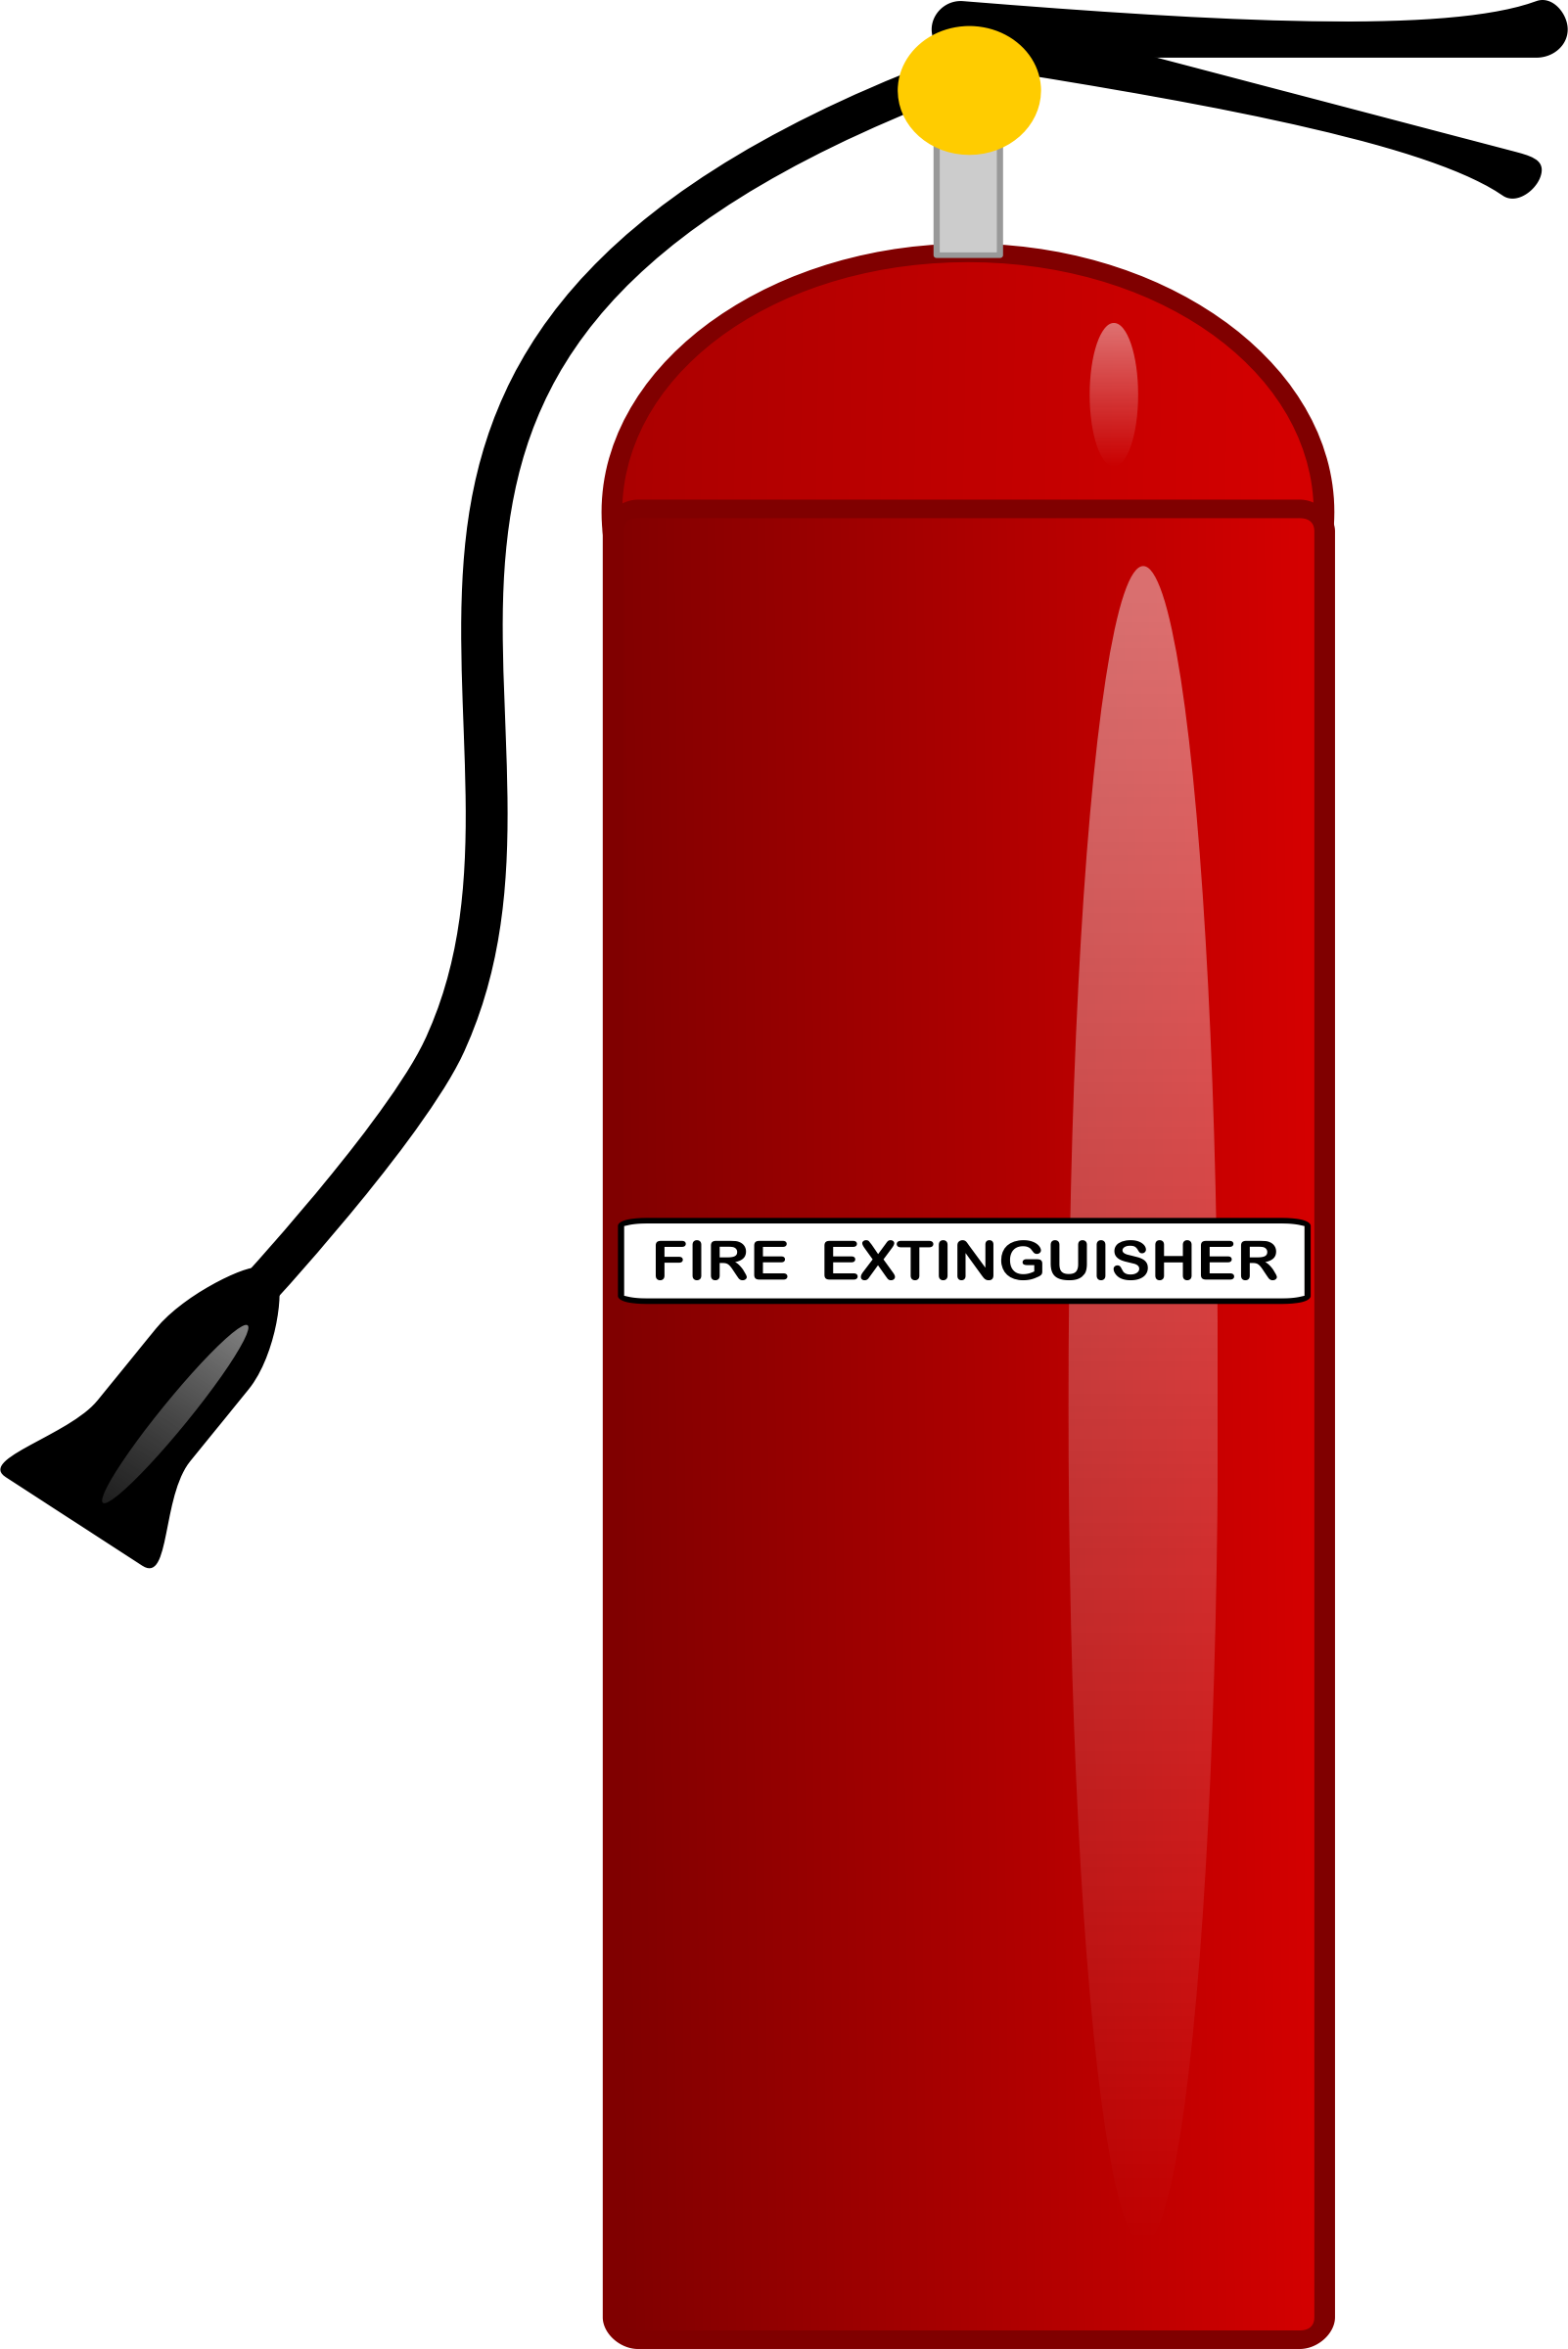 Extinguisher images safety. Flames clipart fire symbol